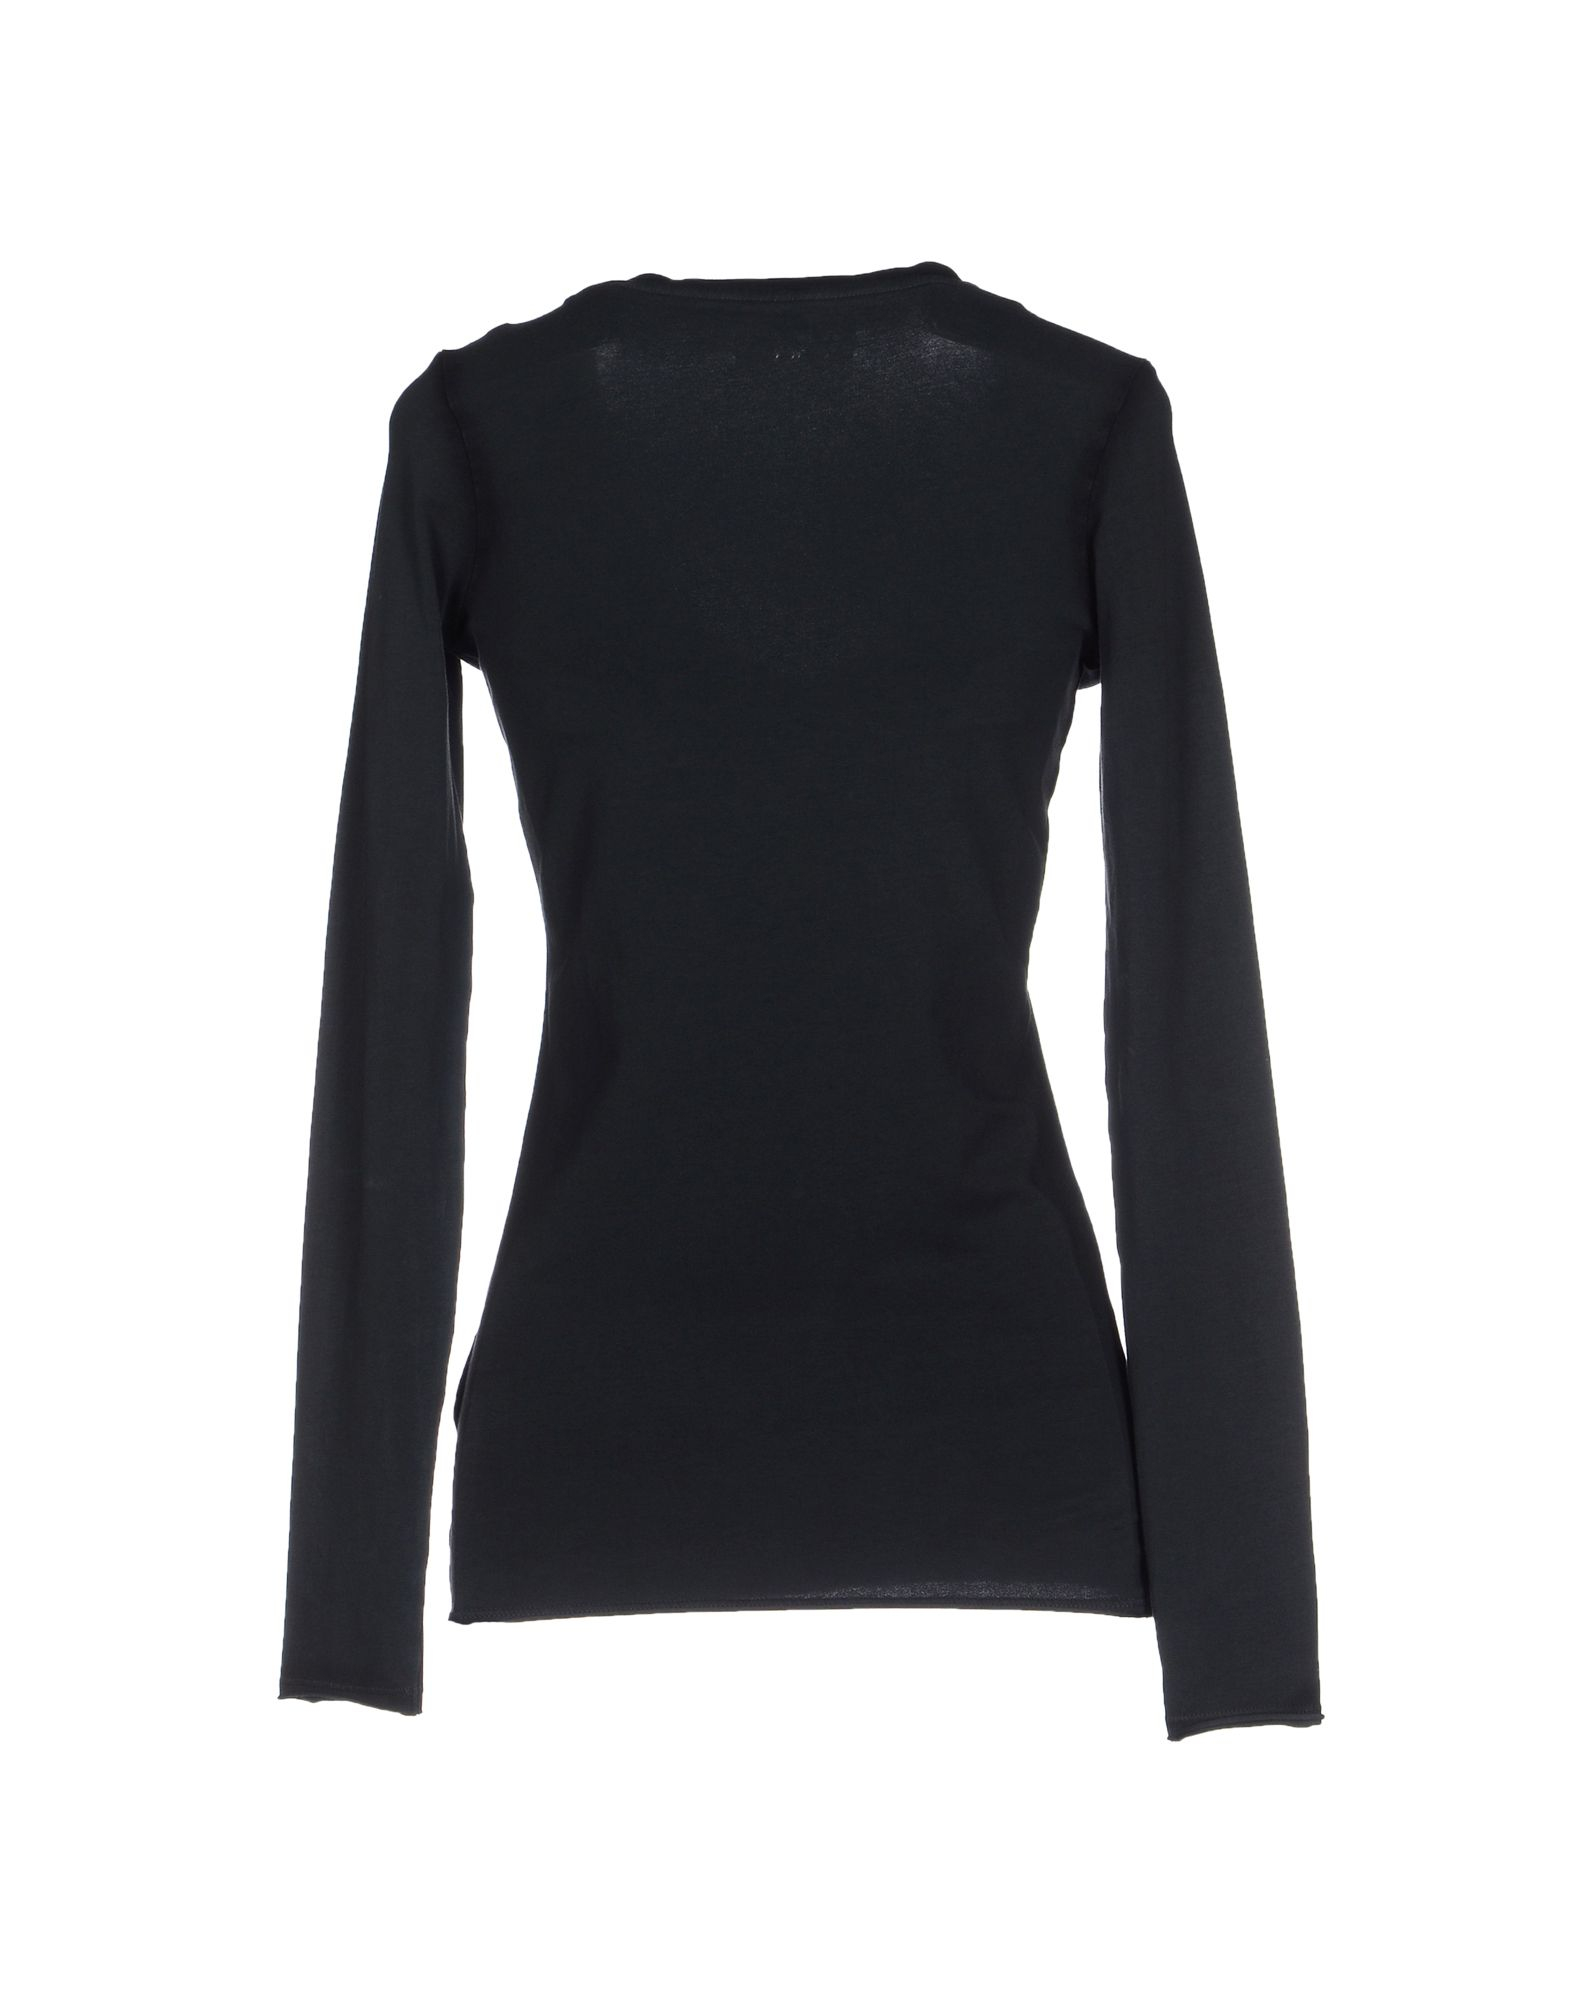 Lyst - Guess T-Shirt in Black